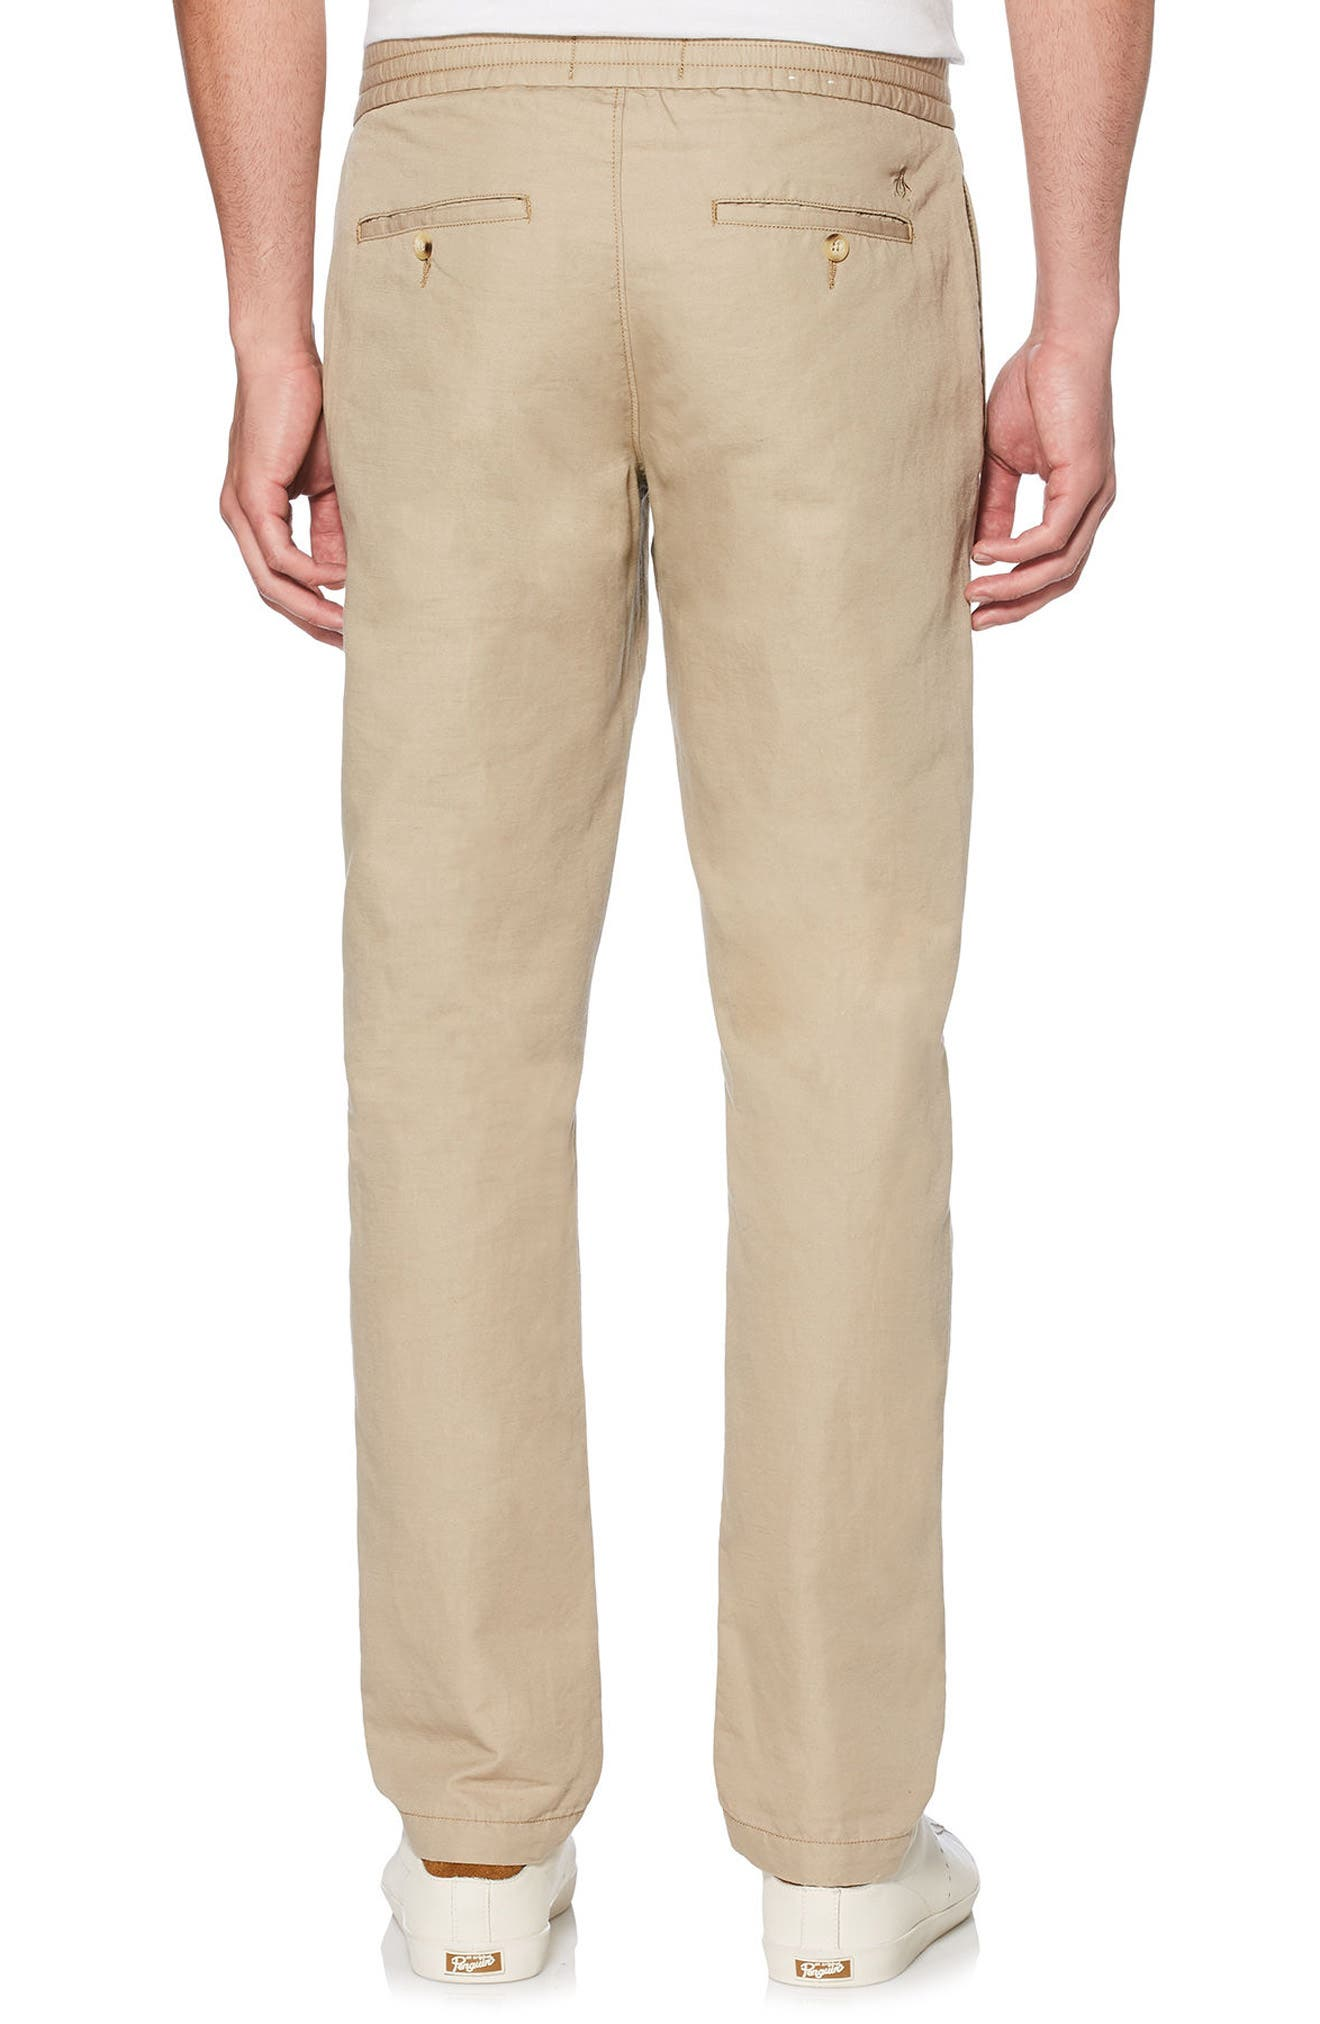 Linen Blend Pants,                             Alternate thumbnail 2, color,                             271